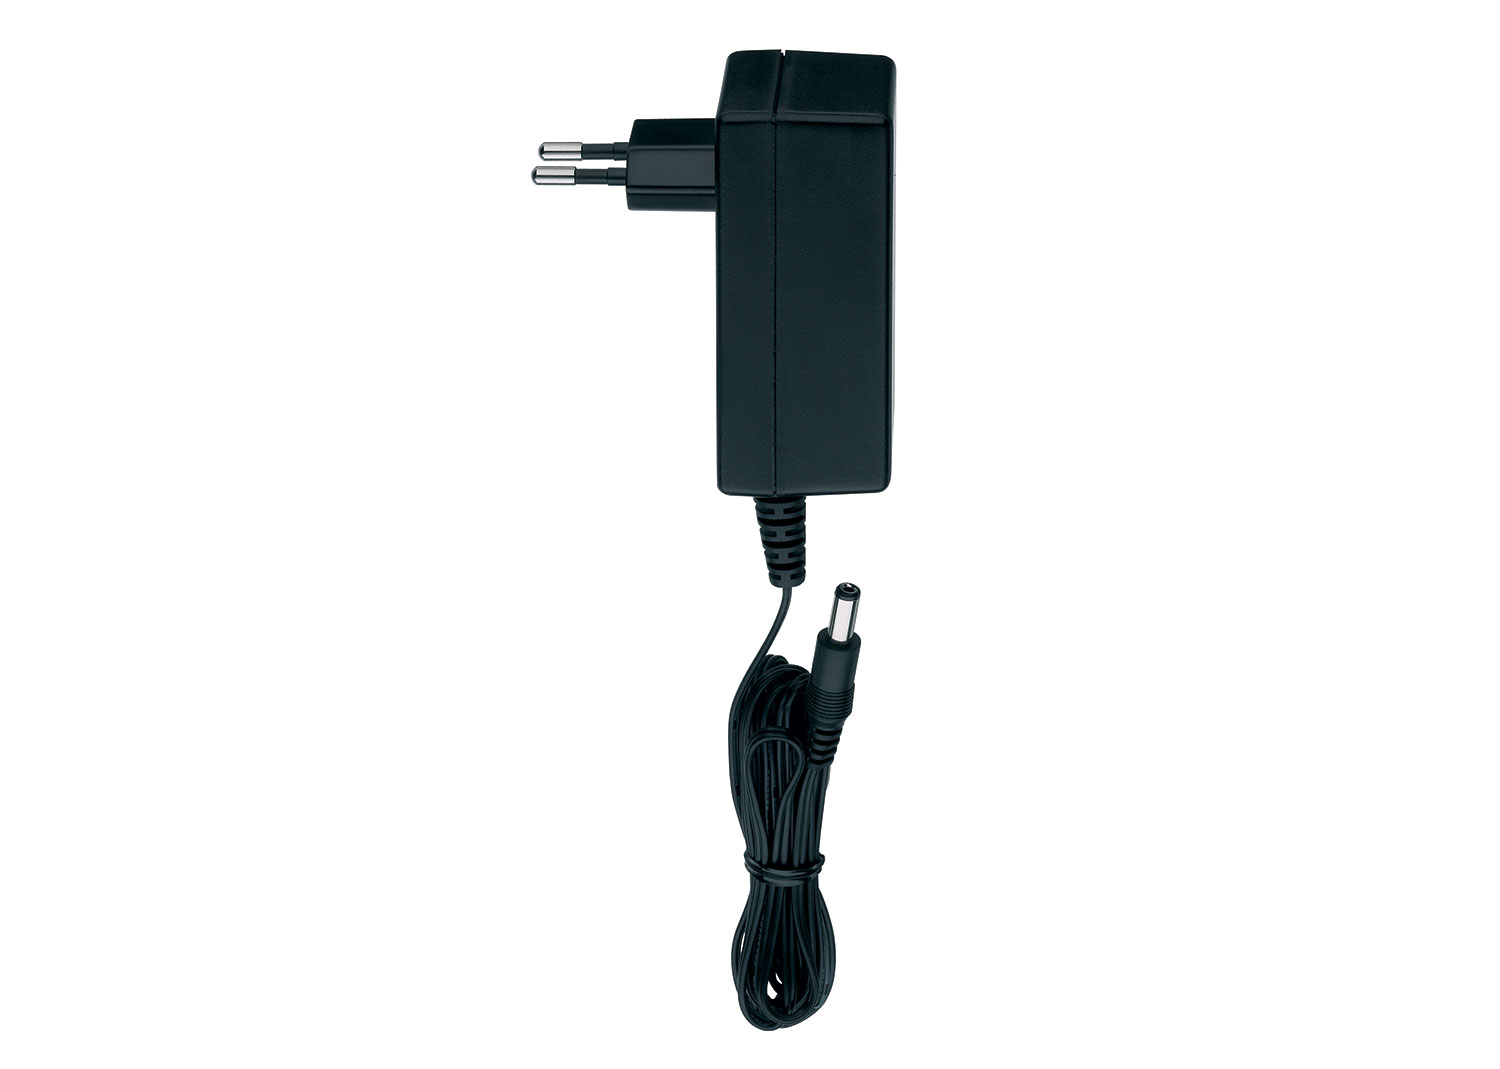 36 VA Switched Mode Power Pack, 230 Volts